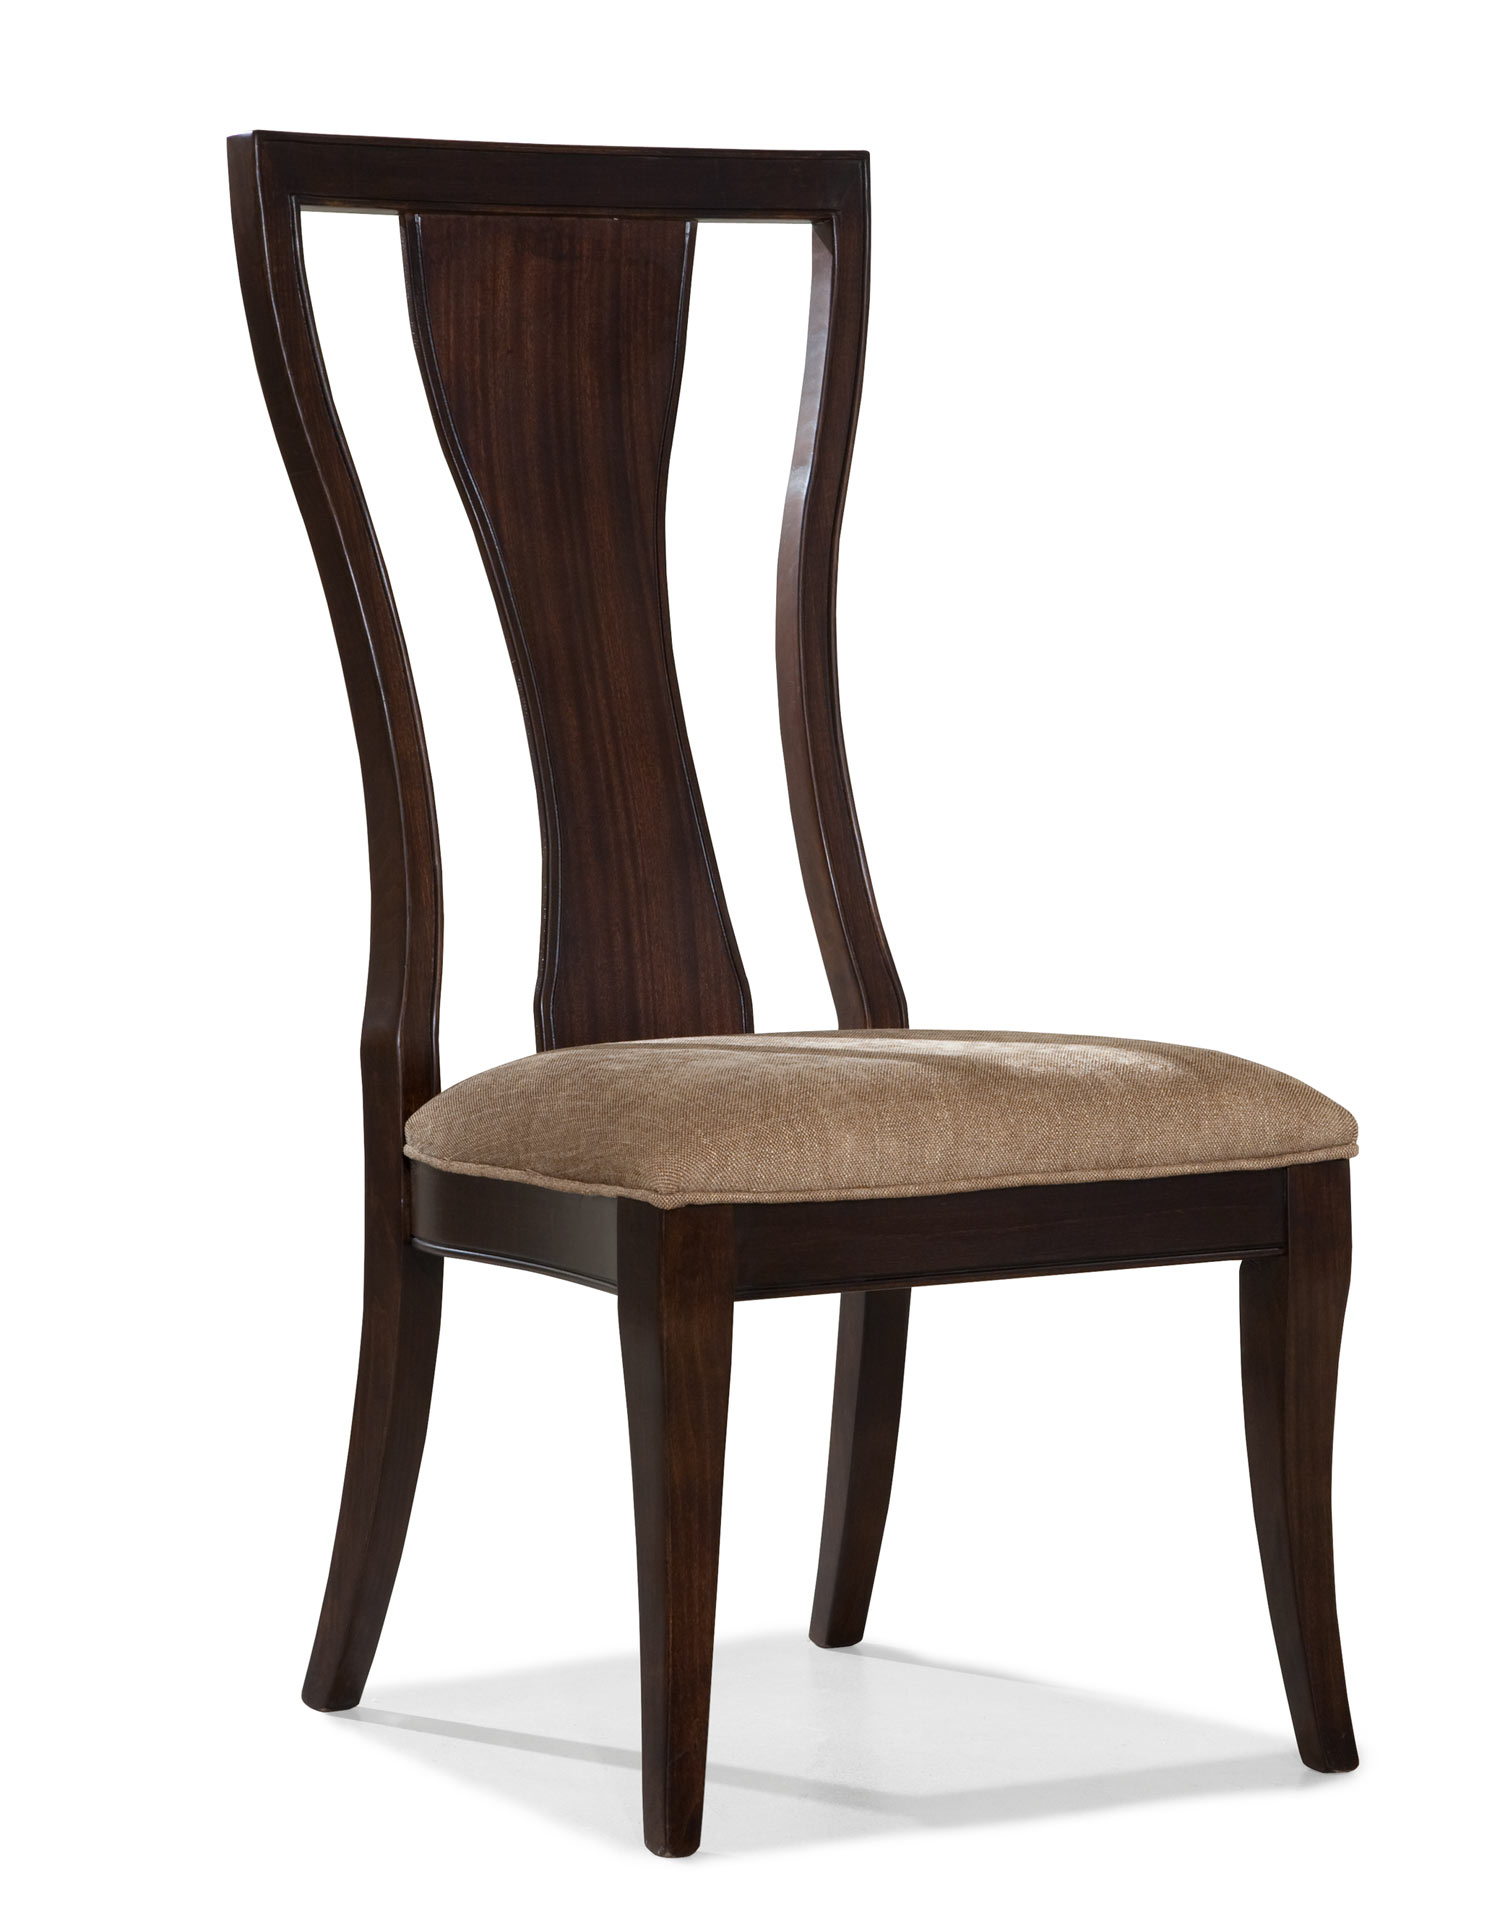 Legacy Classic Laurel Heights Splat Back Side Chair - Dark Truffle